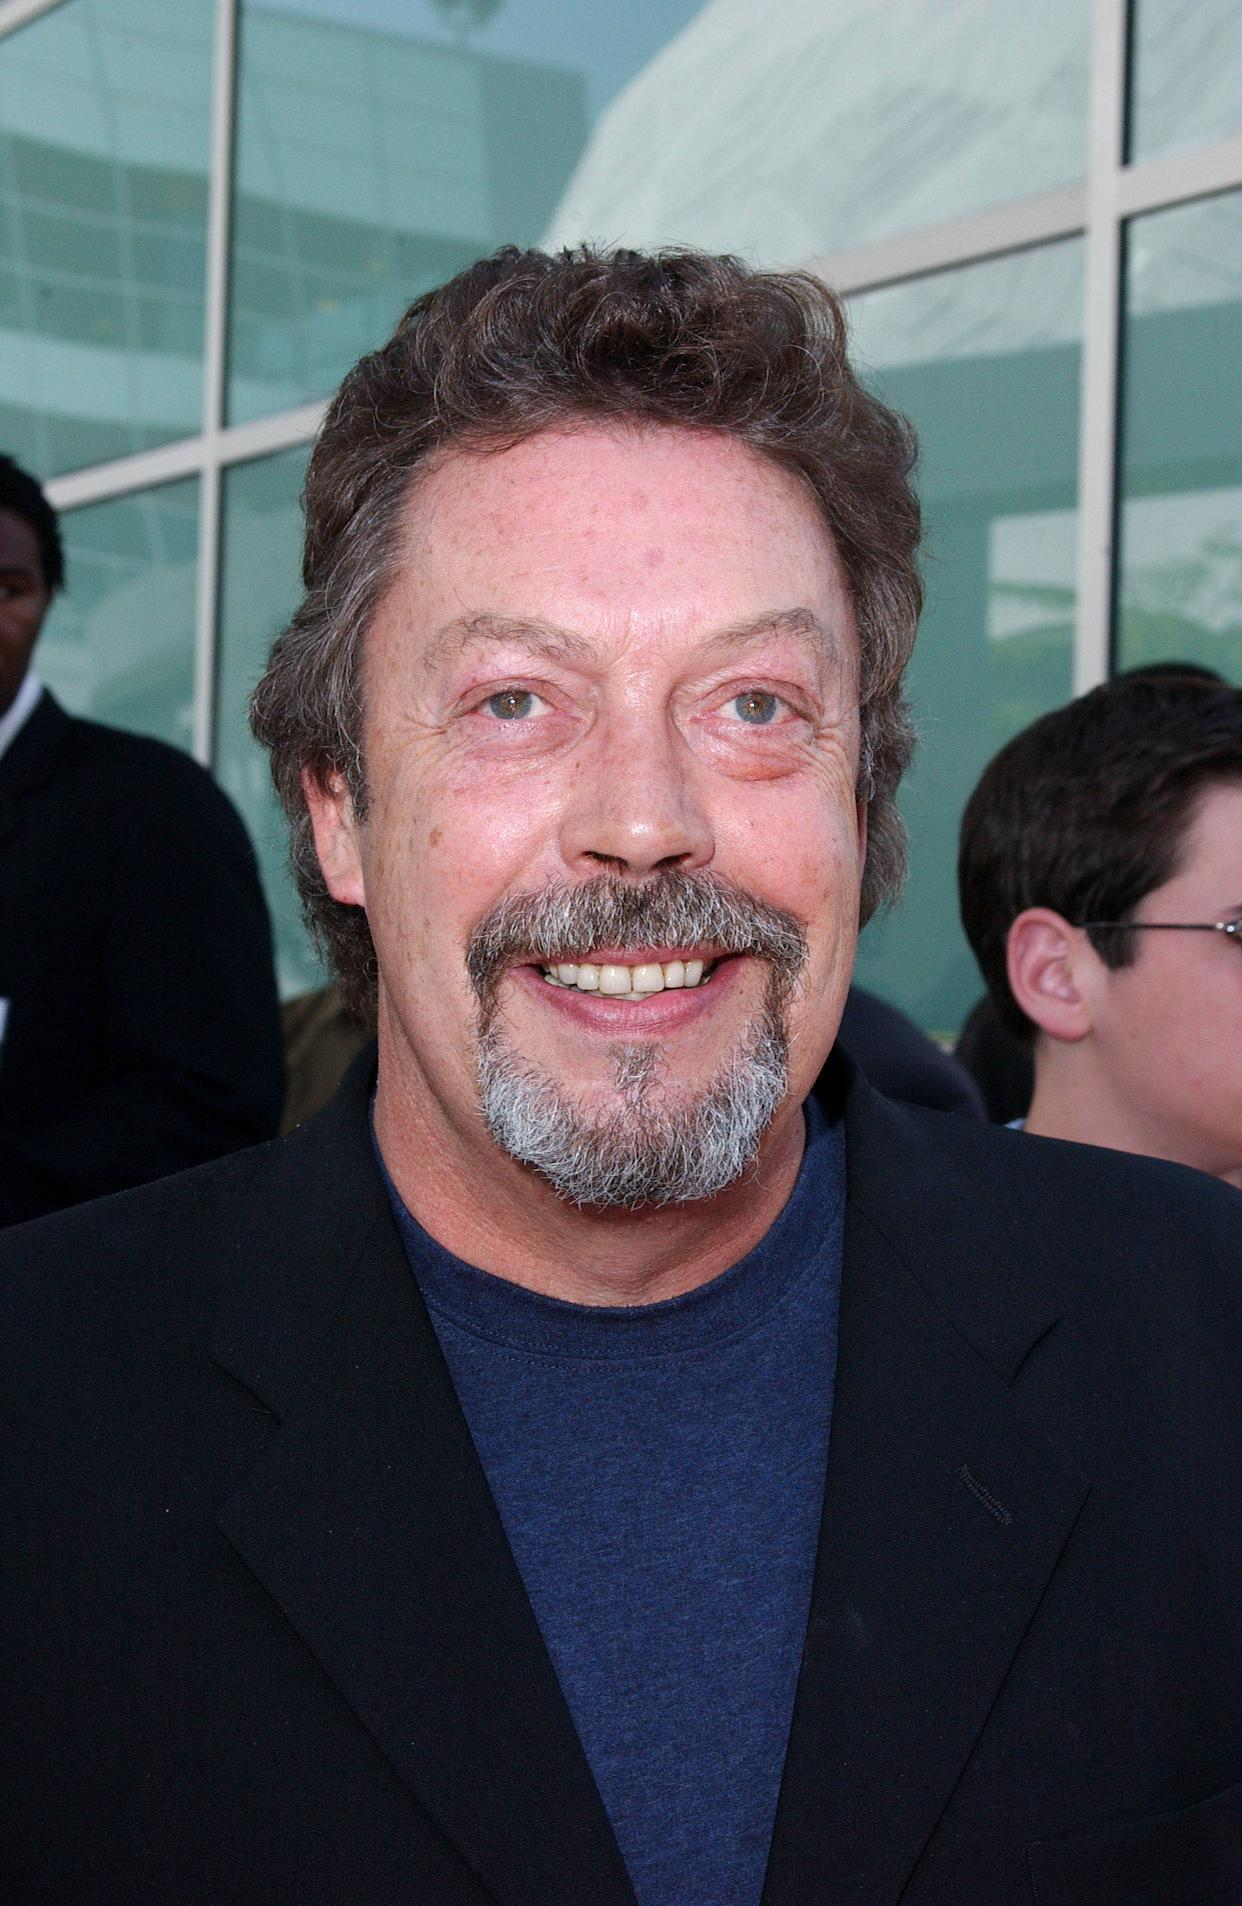 """Photo by: Lee Roth STAR MAX, Inc. - copyright 2003 ALL RIGHTS RESERVED Telephone/Fax (212) 995-1196 6/1/03 Tim Curry at the world premiere of """"Rugrats Go Wild"""". (Hollywood, CA) (Star Max via AP Images)"""